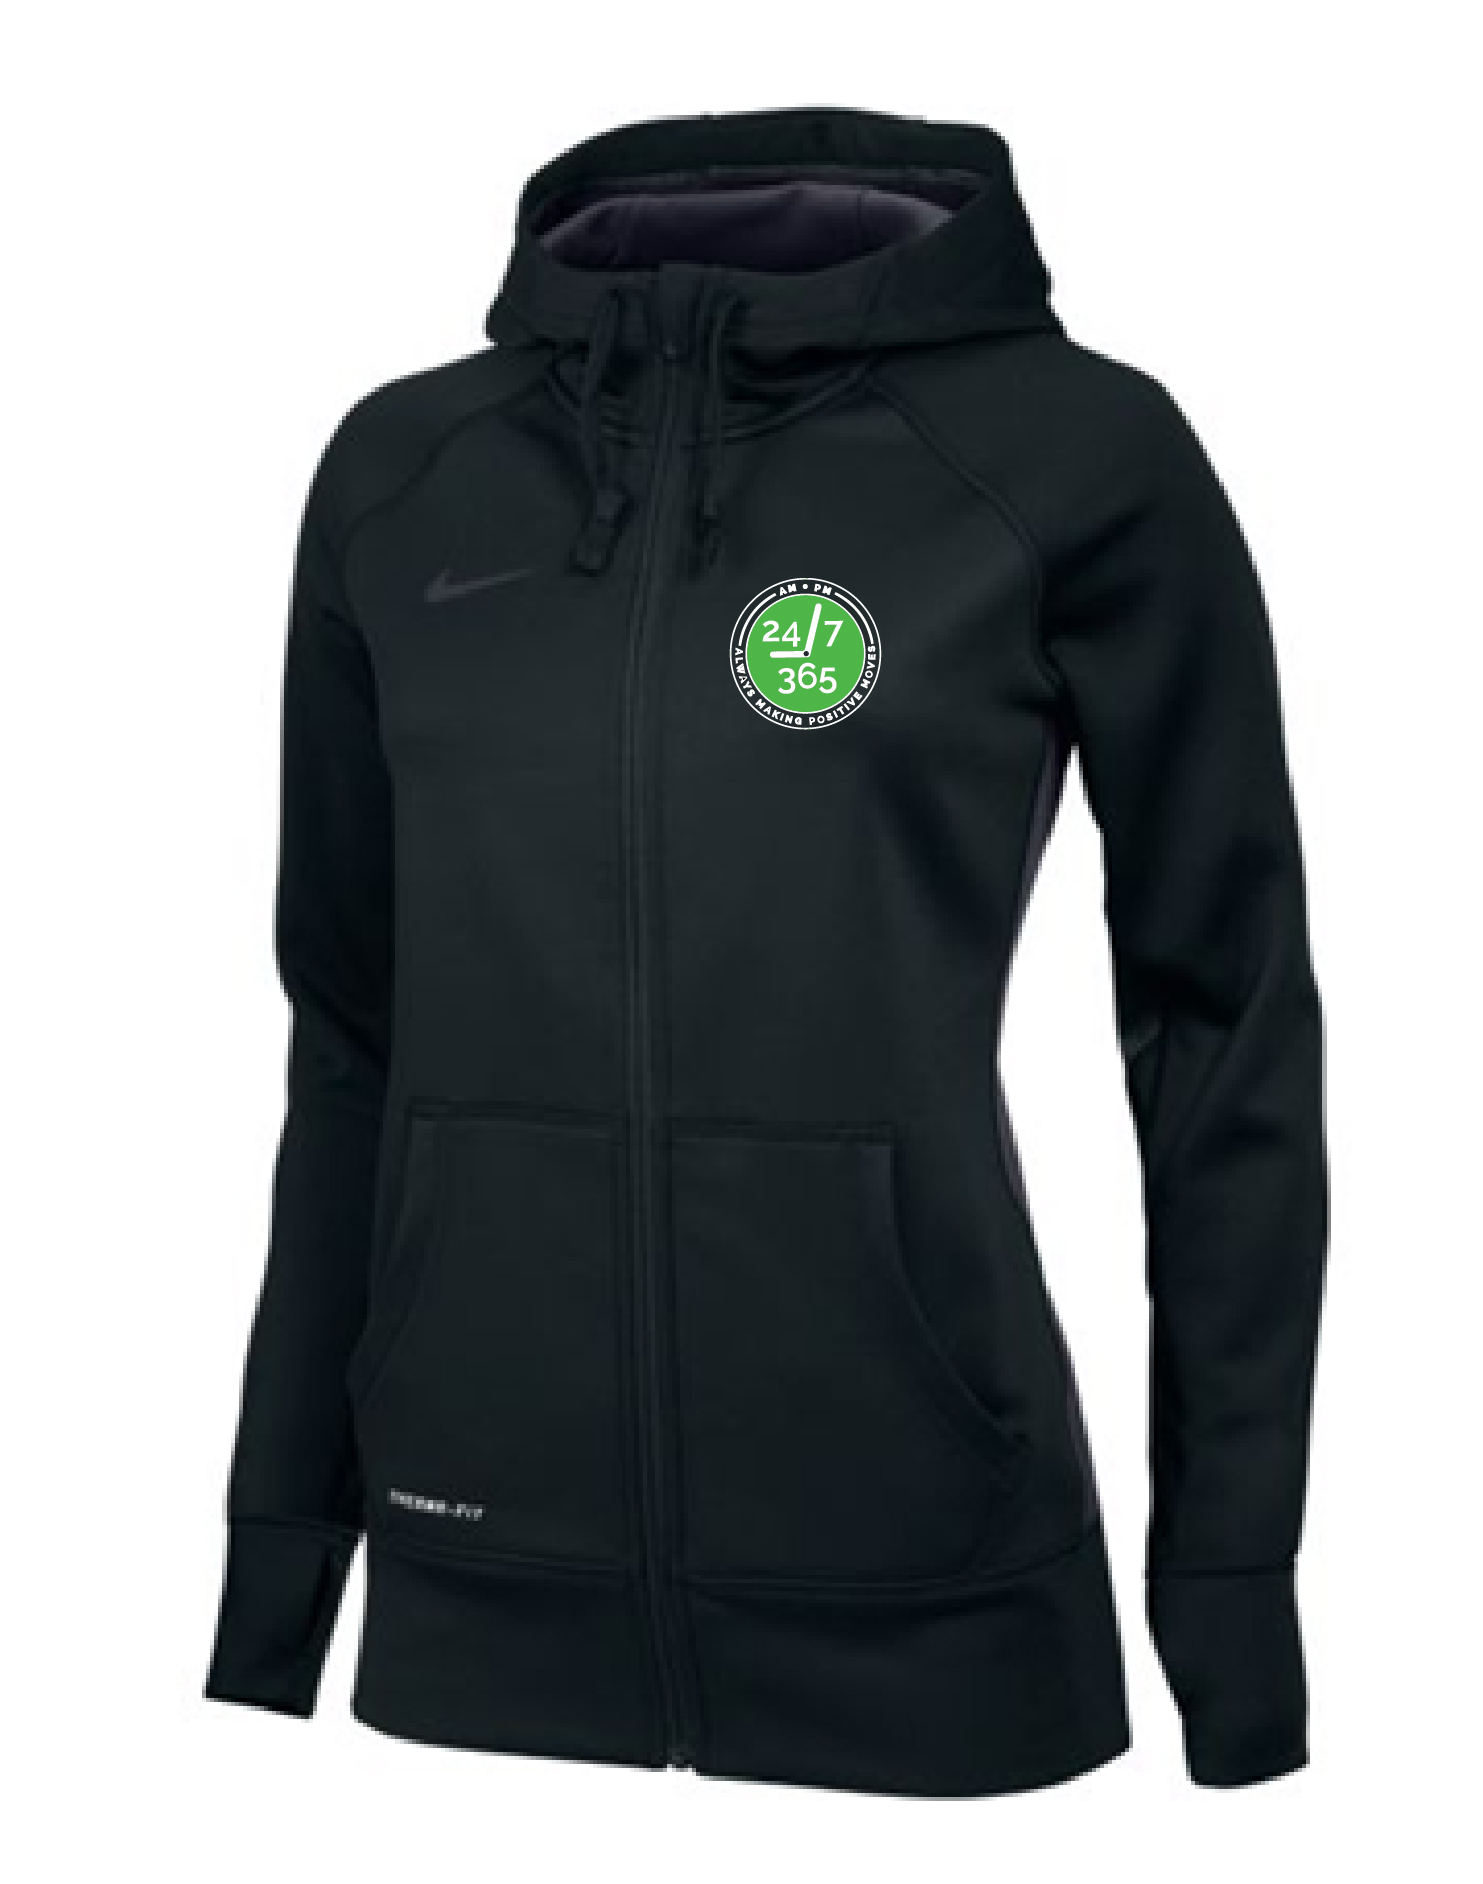 Women's Full-Zip Training Hoodie